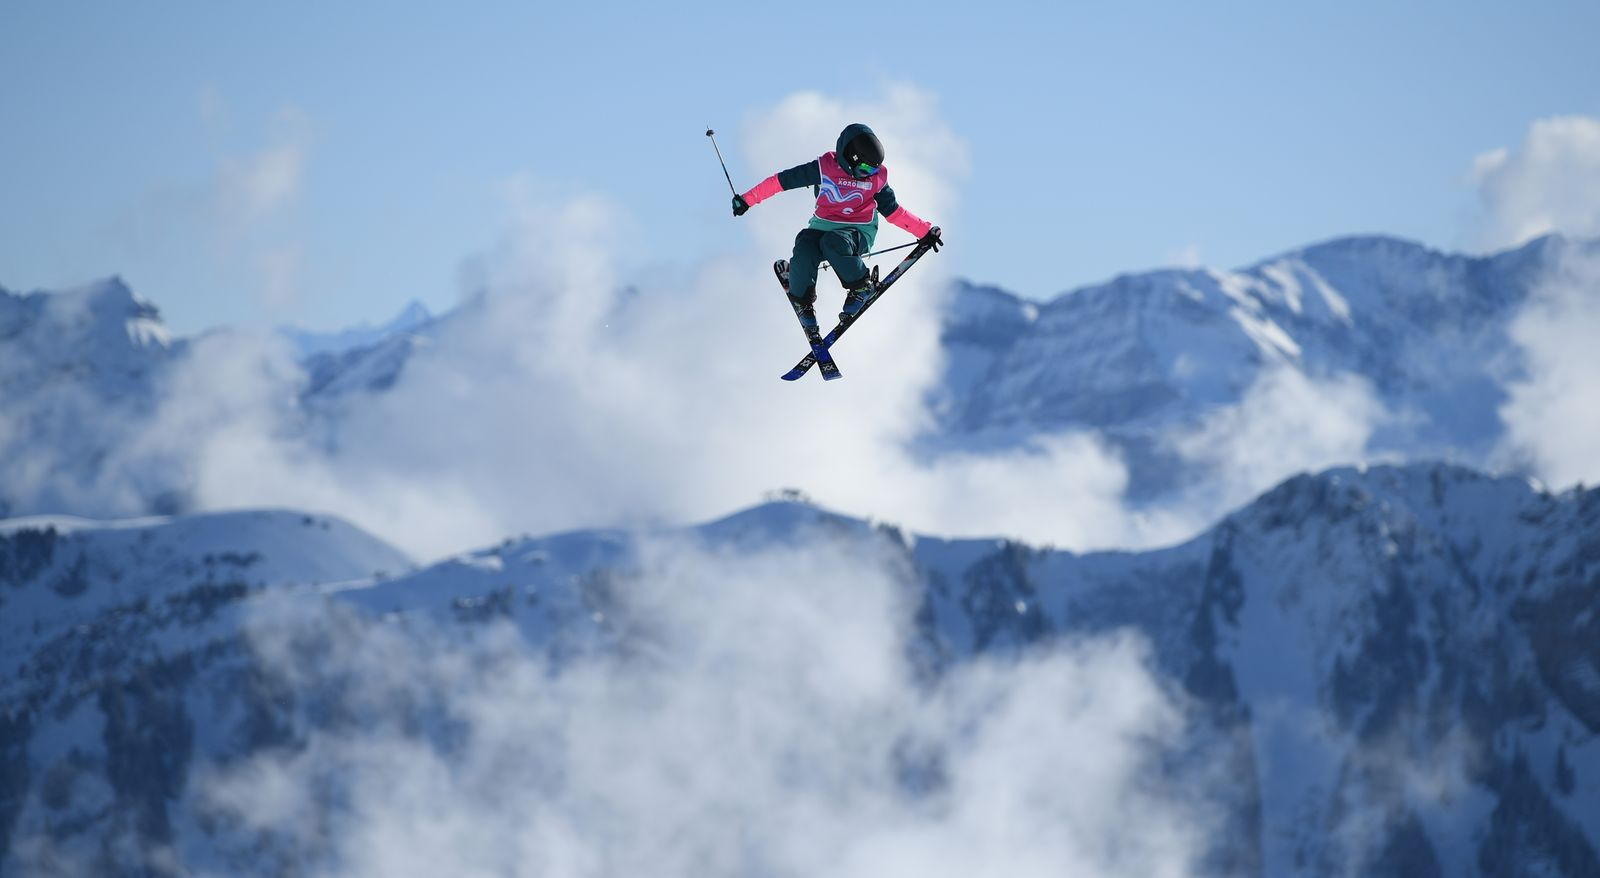 *** YEAR IN REVIEW - SPORT *** Lausanne 2020 Winter Youth Olympics - Day 9